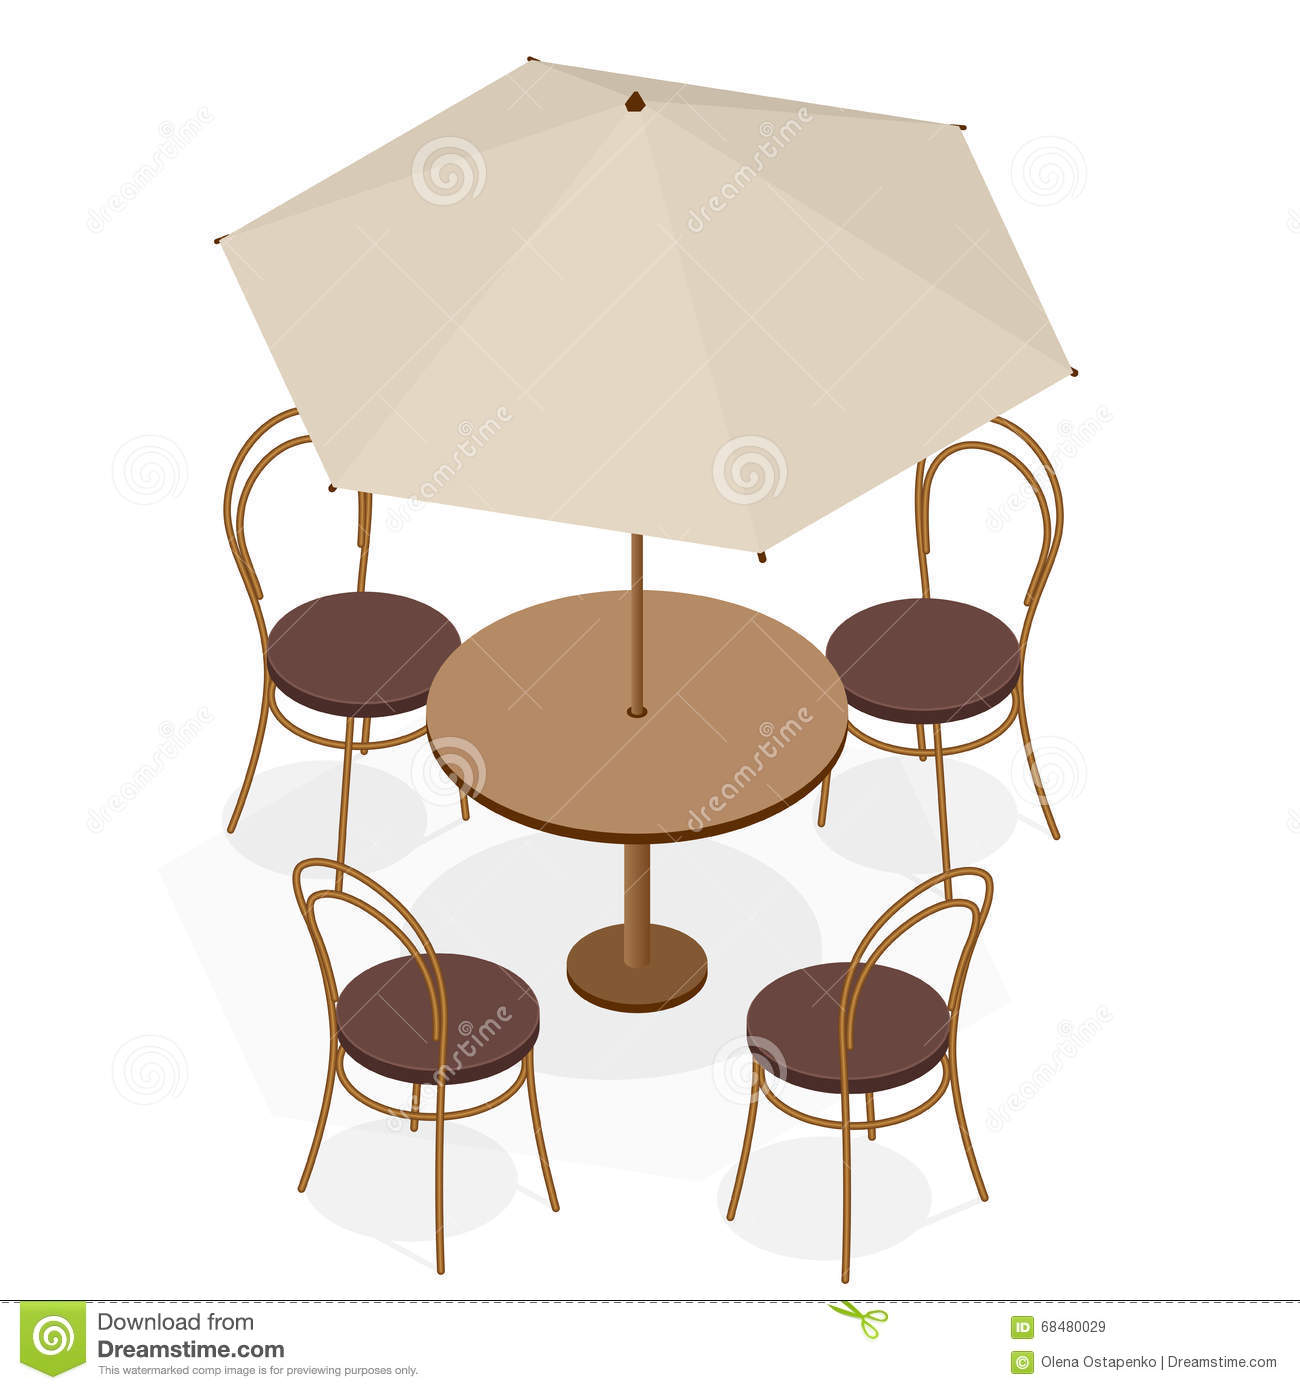 Table With Chairs For Cafes Modern Table And Chairs On White Background Flat 3d Isometric Vector Illustration Stock Vector Illustration Of Sketch Relax 68480029